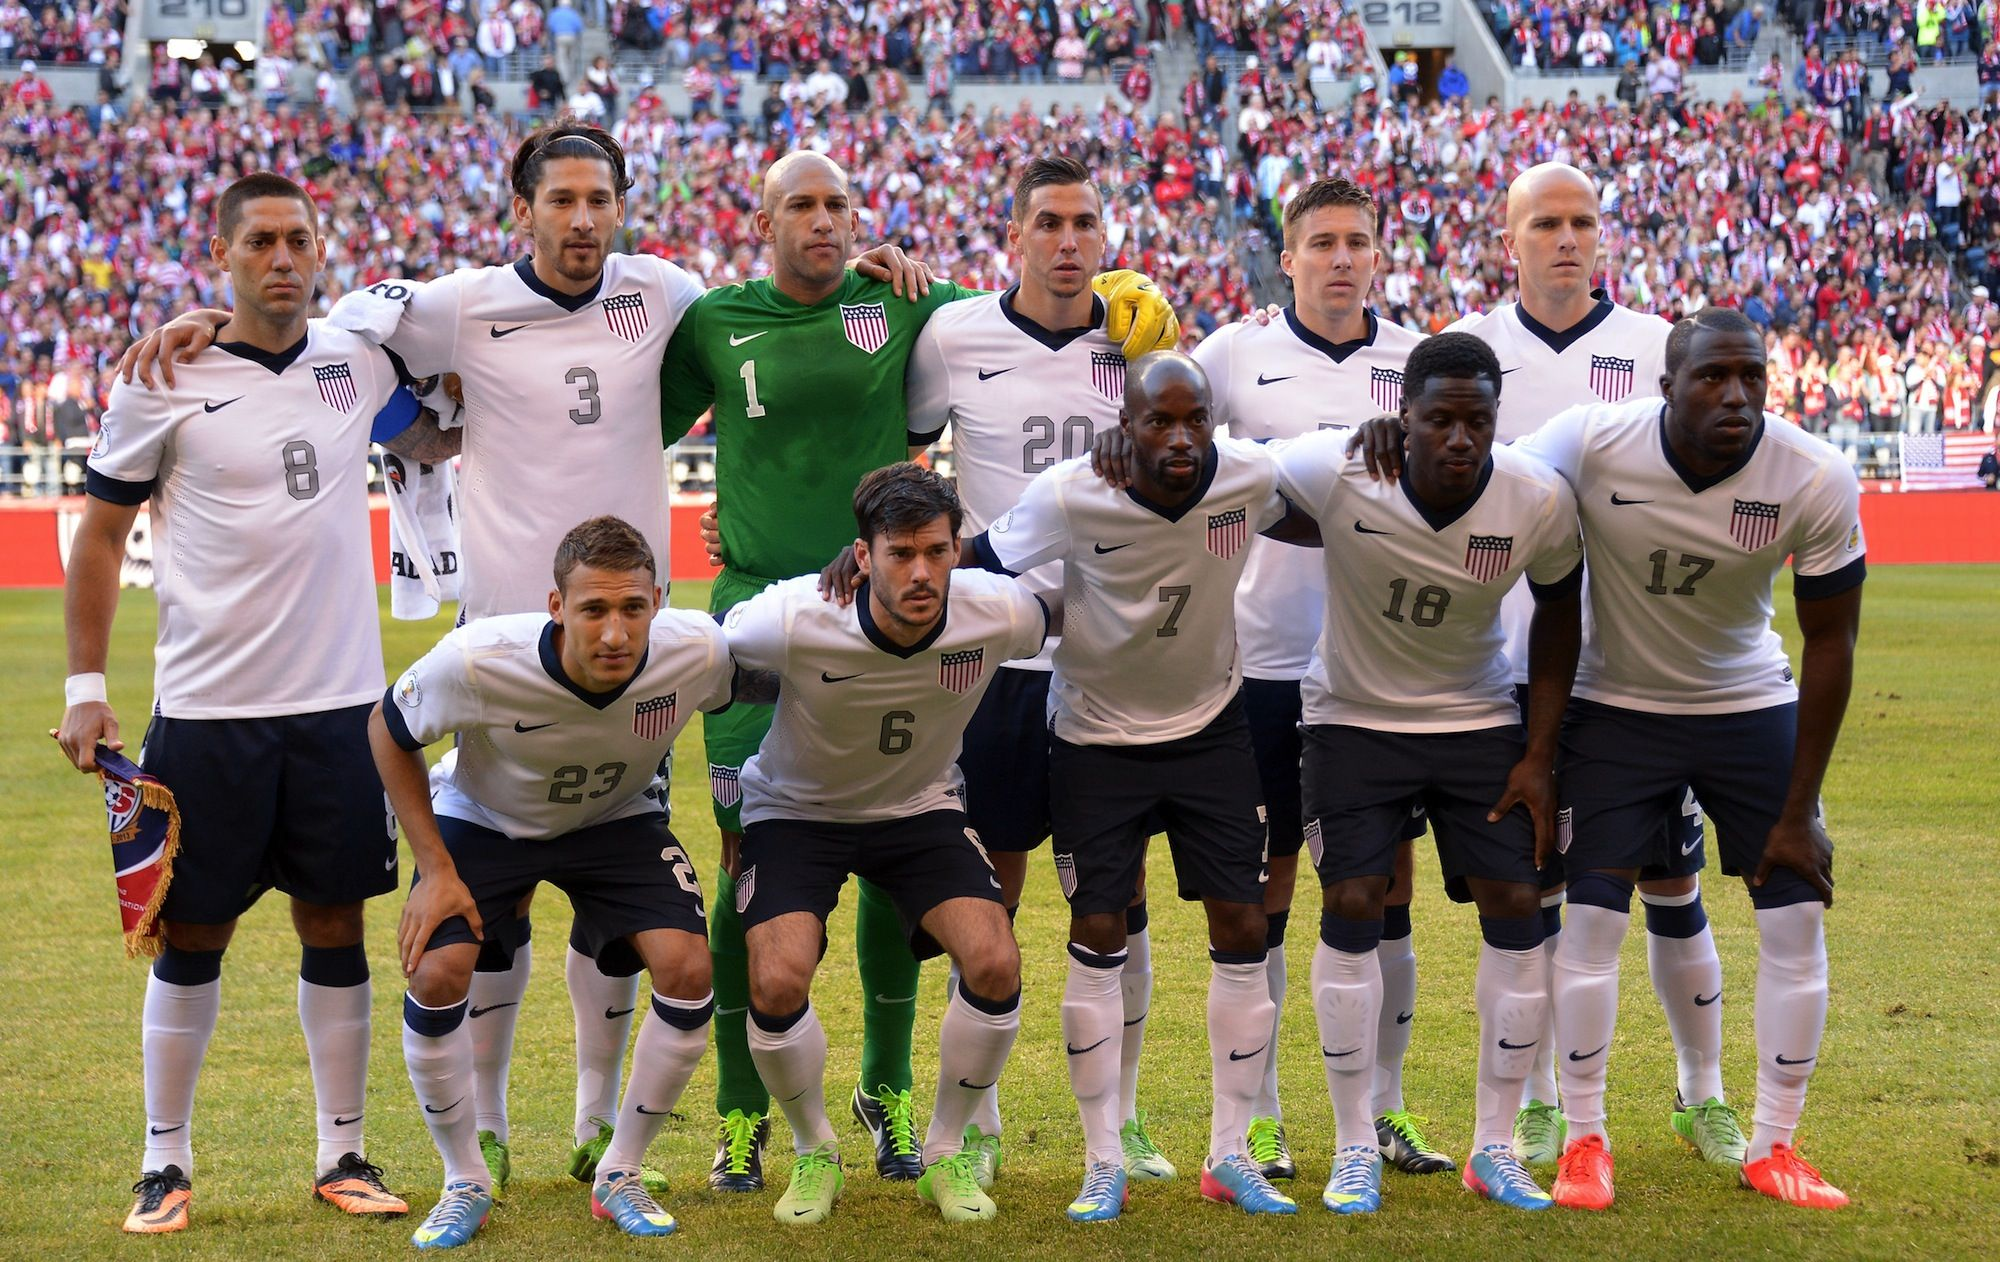 Sports, Music Download and Latest songs: USA needs to win ...